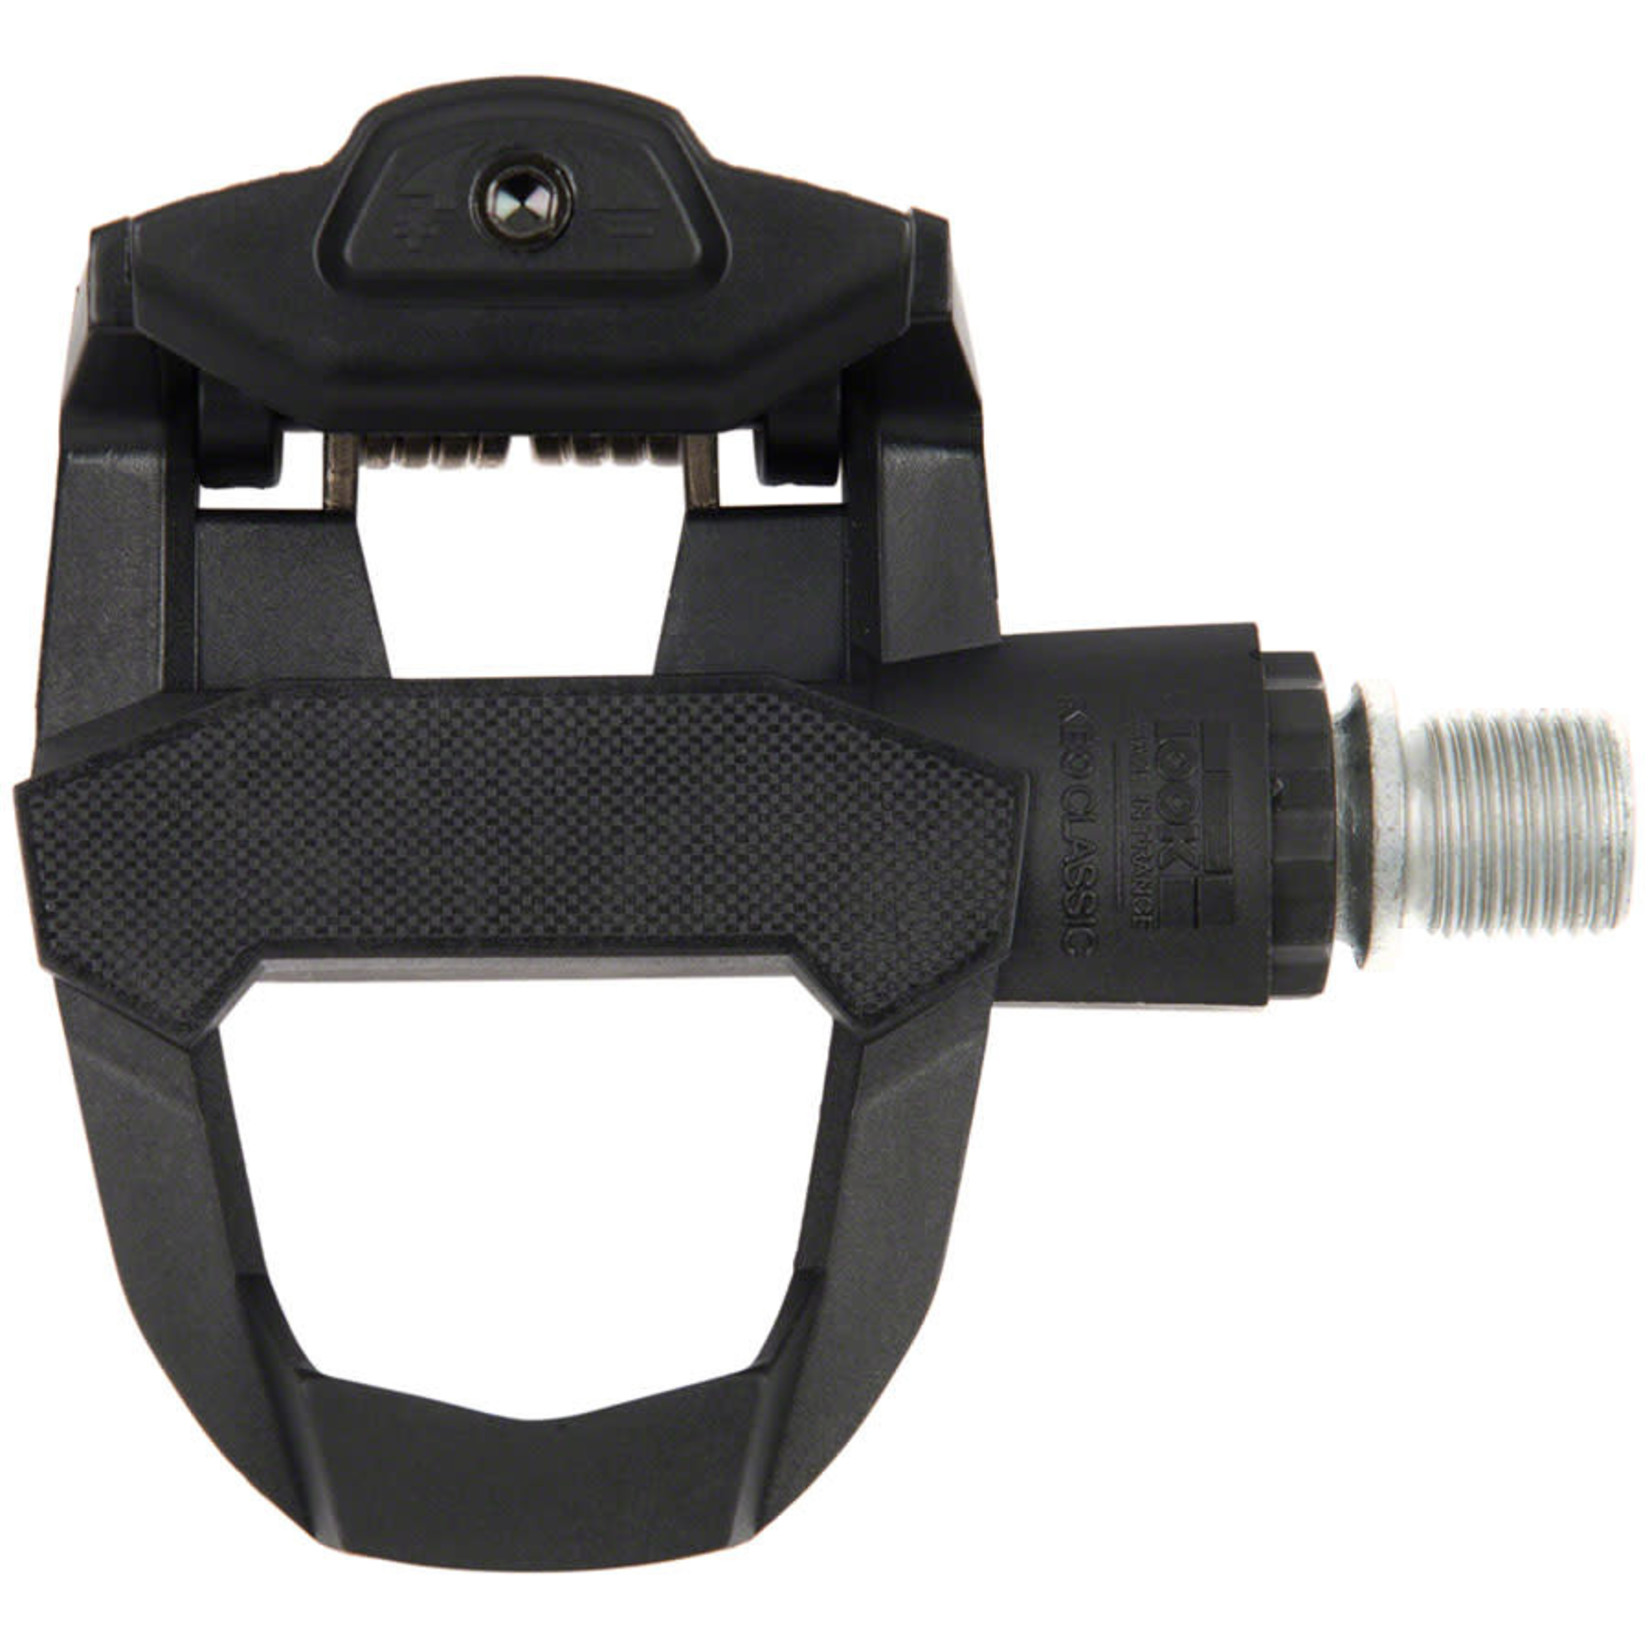 """Look LOOK KEO CLASSIC 3 Pedals - Single Sided Clipless, Chromoly, 9/16"""", Black"""